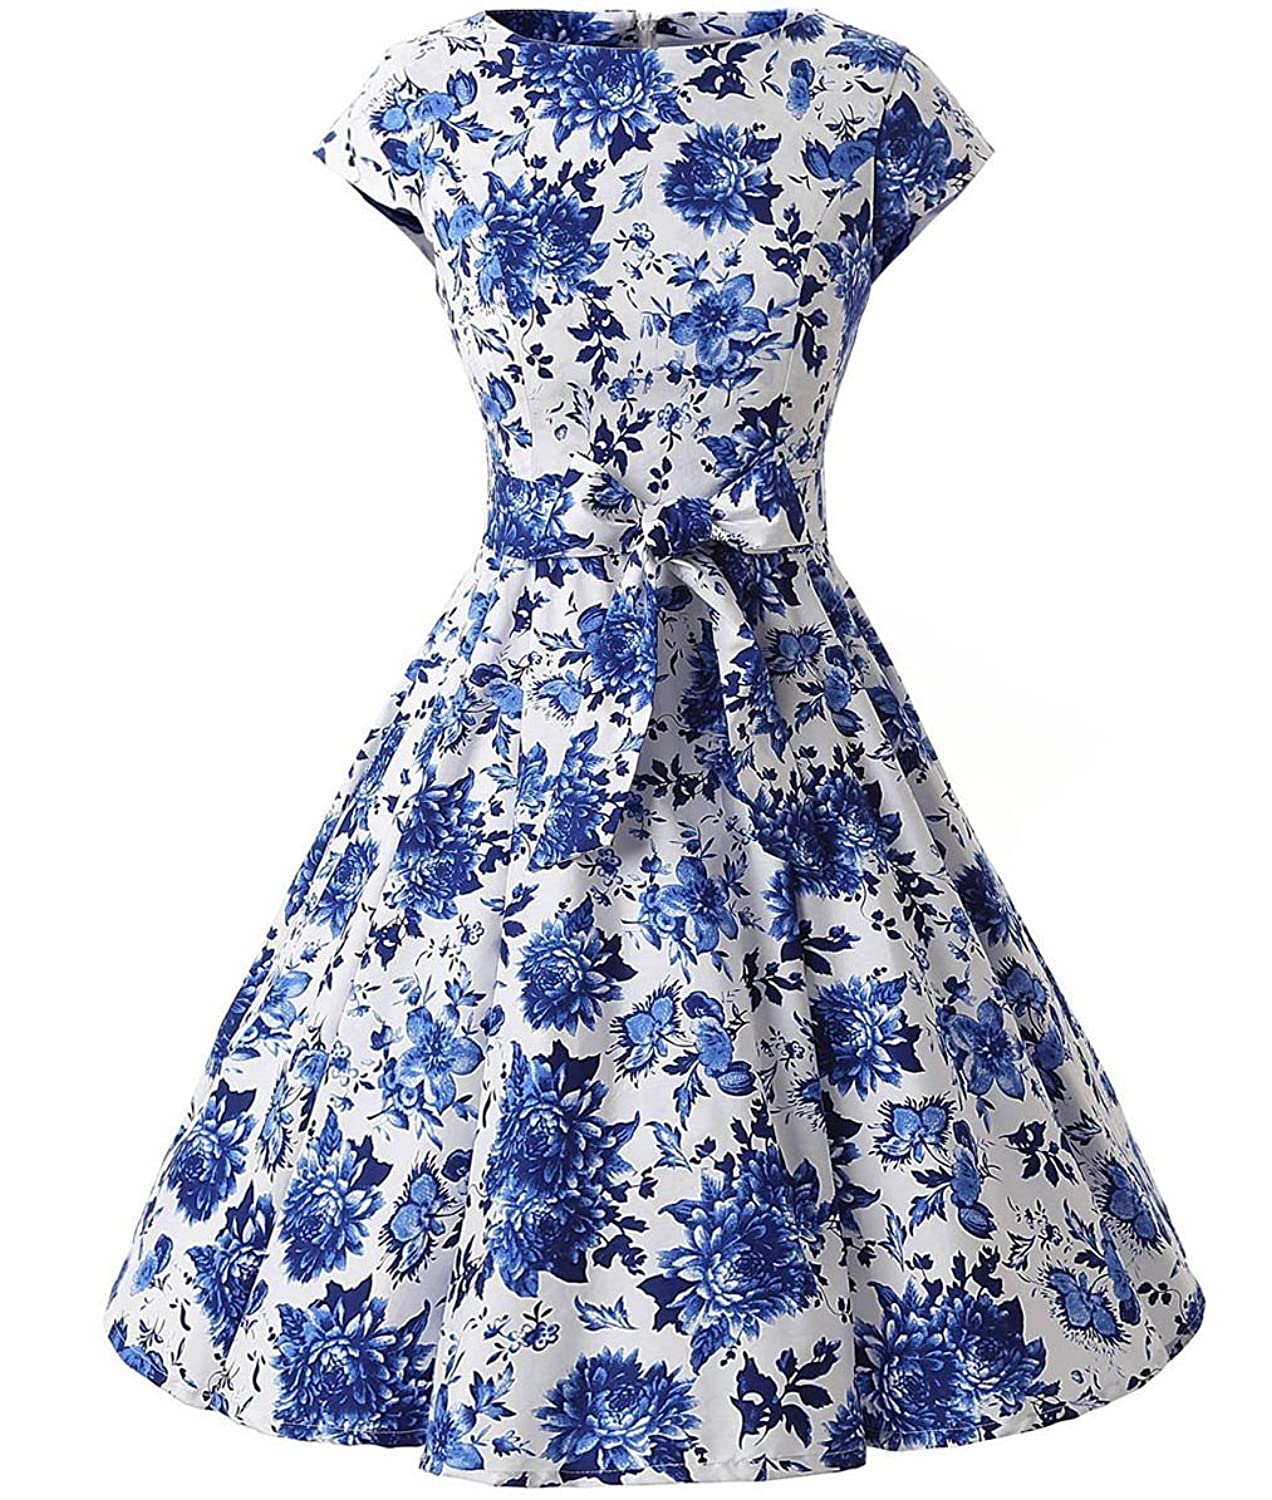 Ensnovo Women Cap Sleeve 50s Floral Vintage Rockabilly Swing Cocktail Party Dress